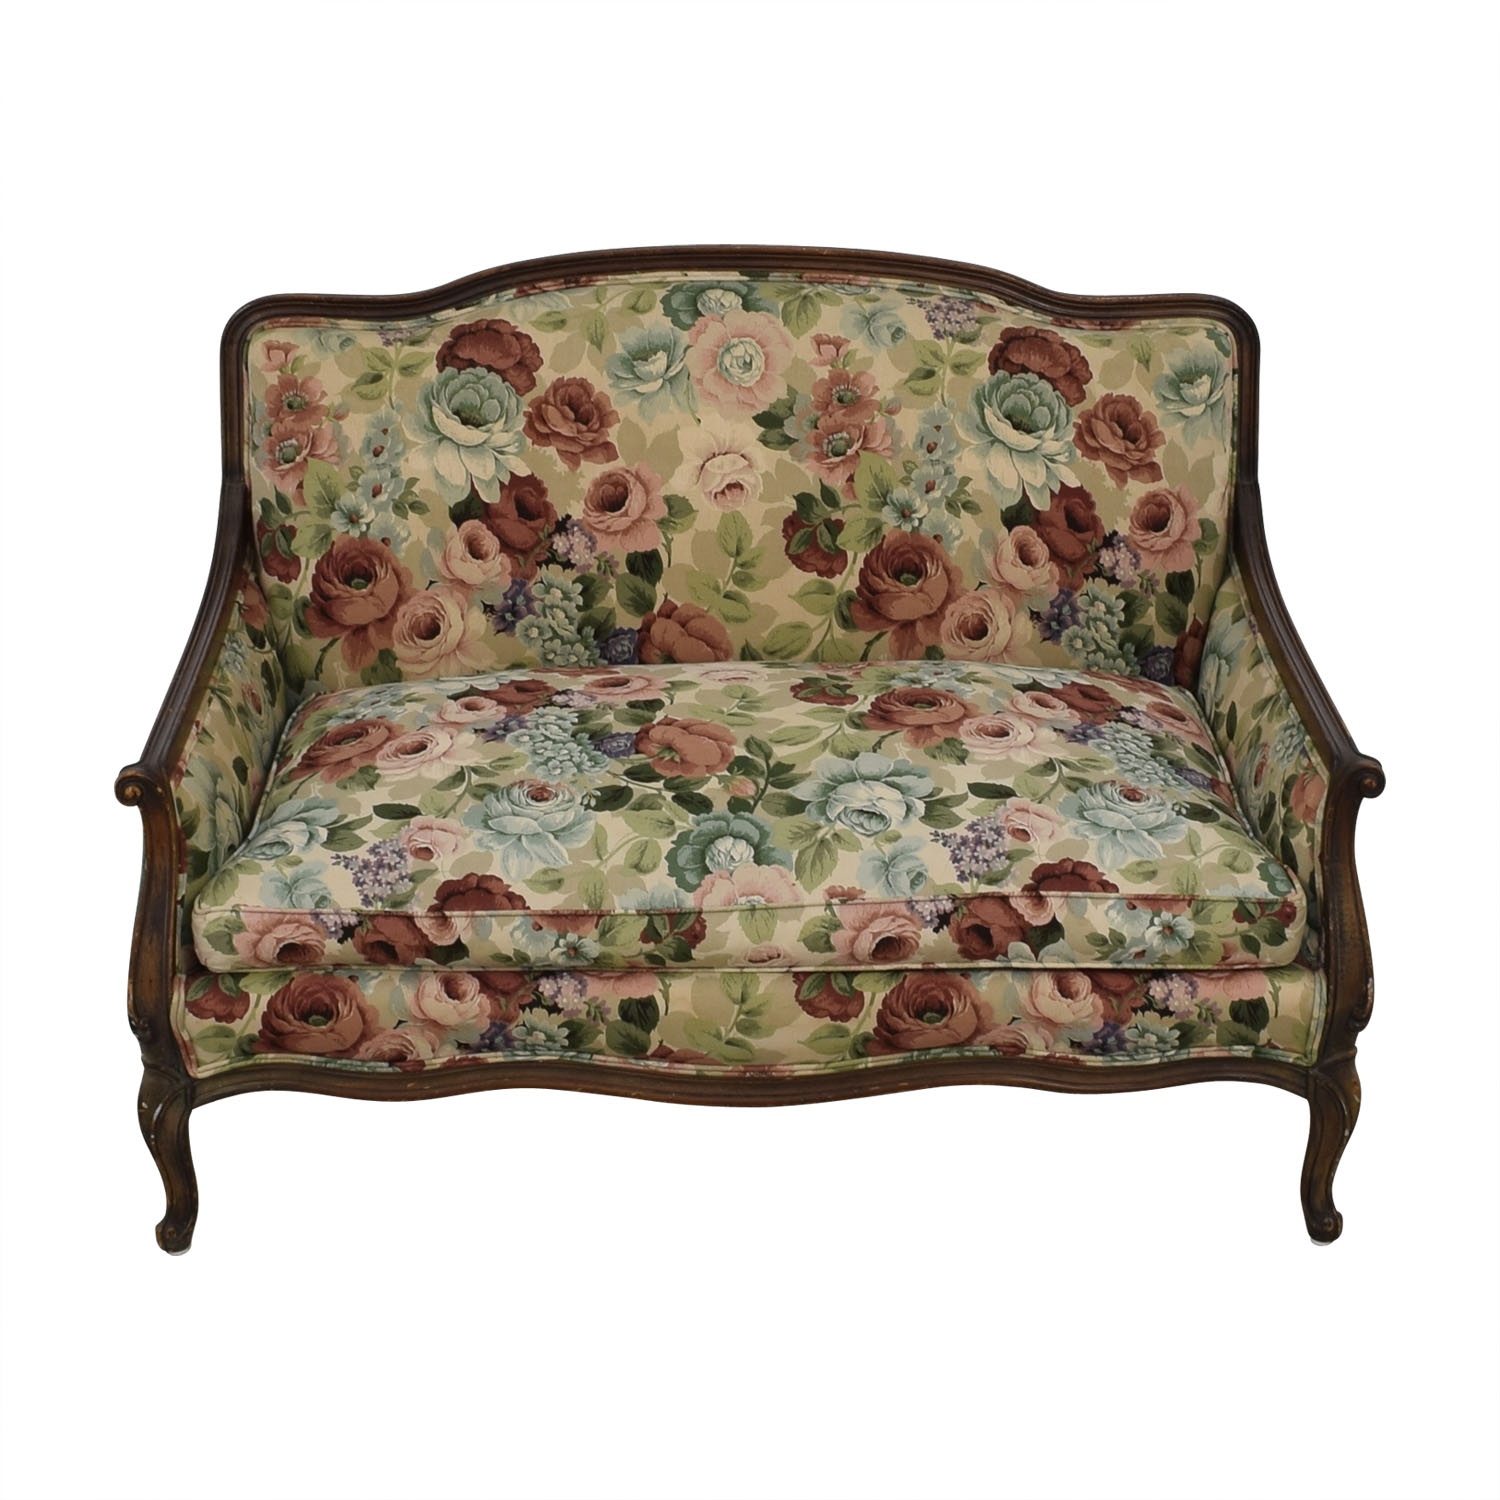 Antique Floral Upholstered Single Cushion Loveseat